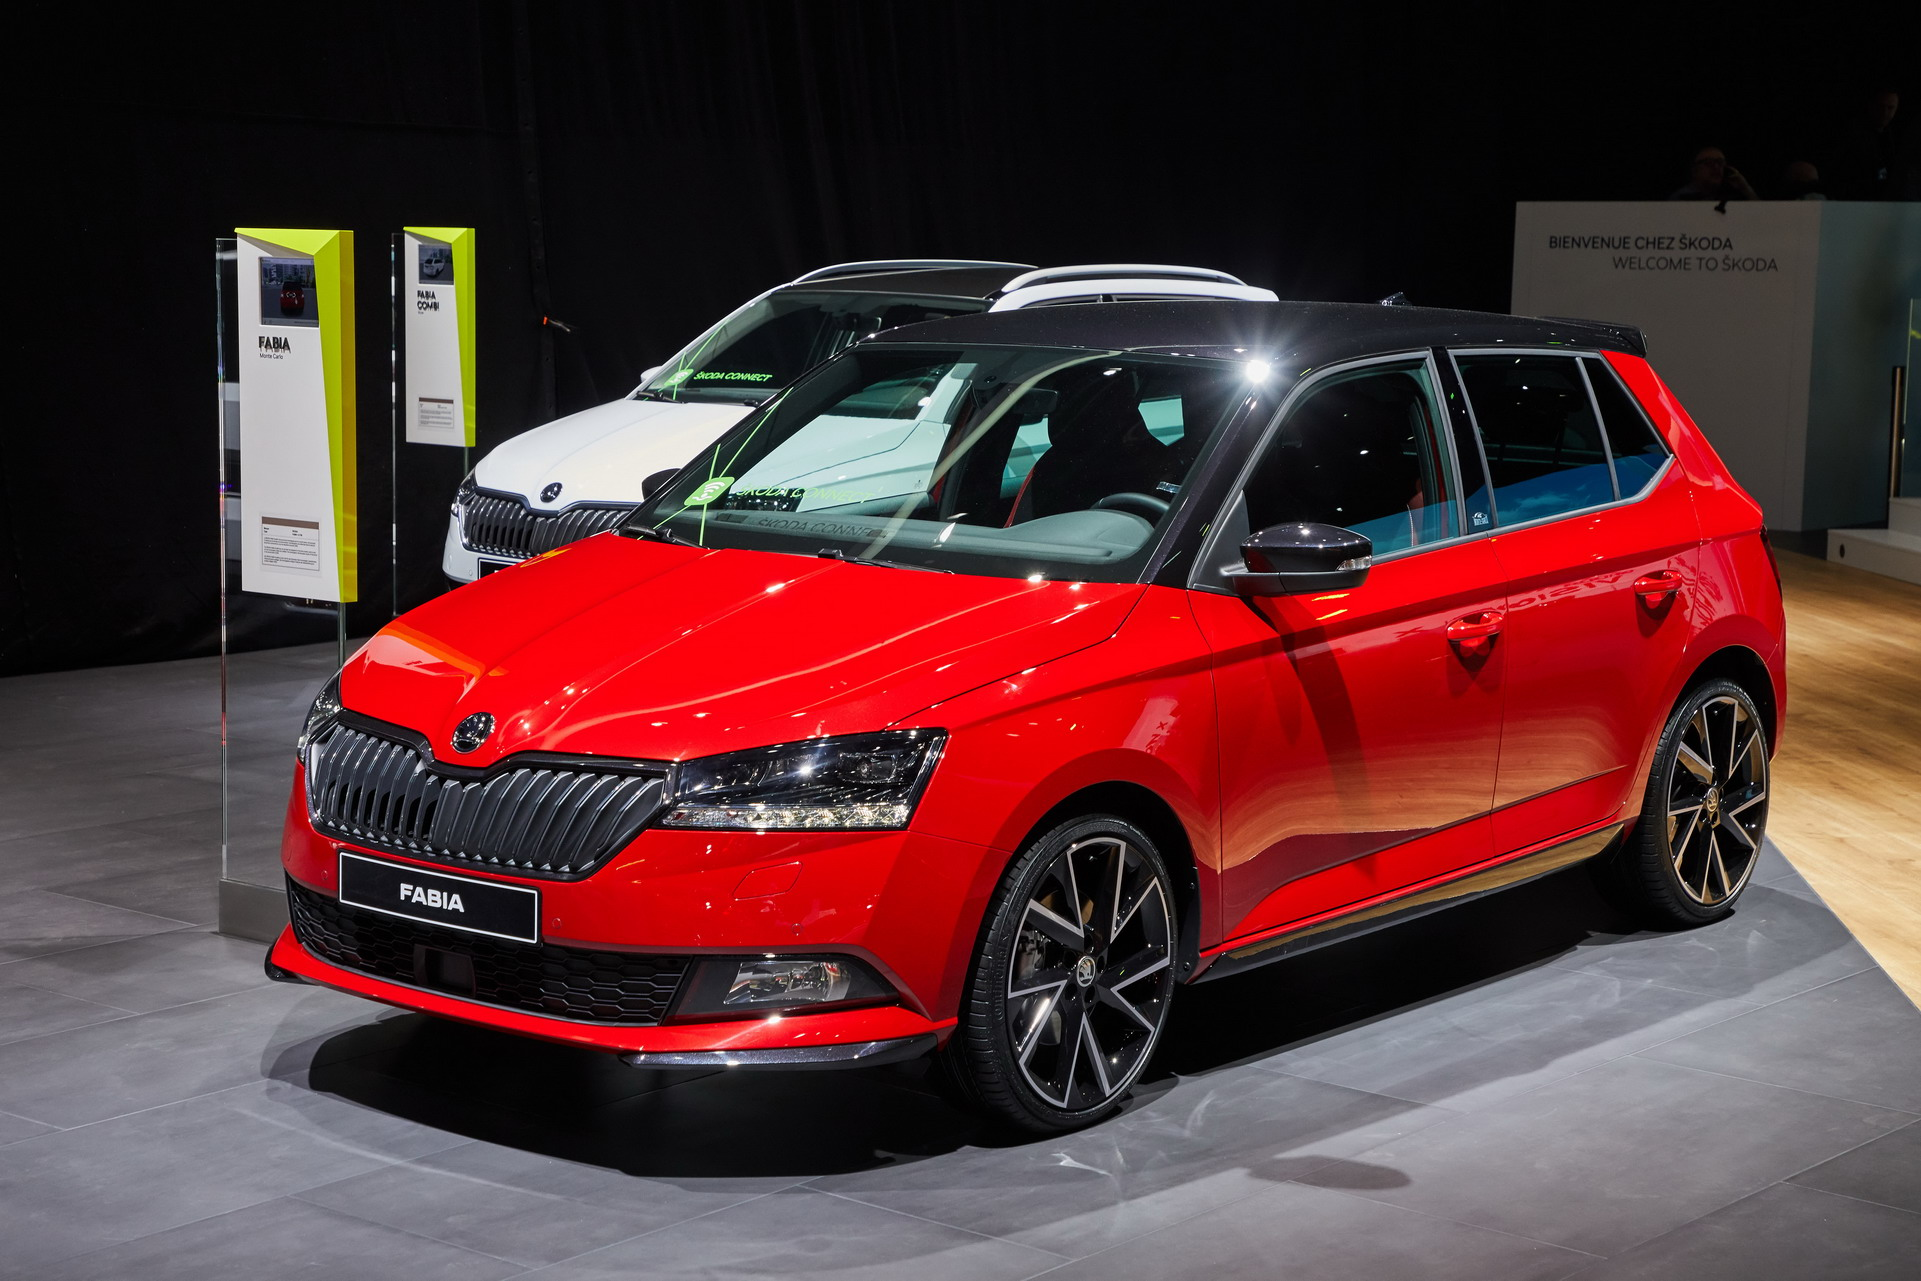 skoda fabia facelift 2018 koda autopareri. Black Bedroom Furniture Sets. Home Design Ideas